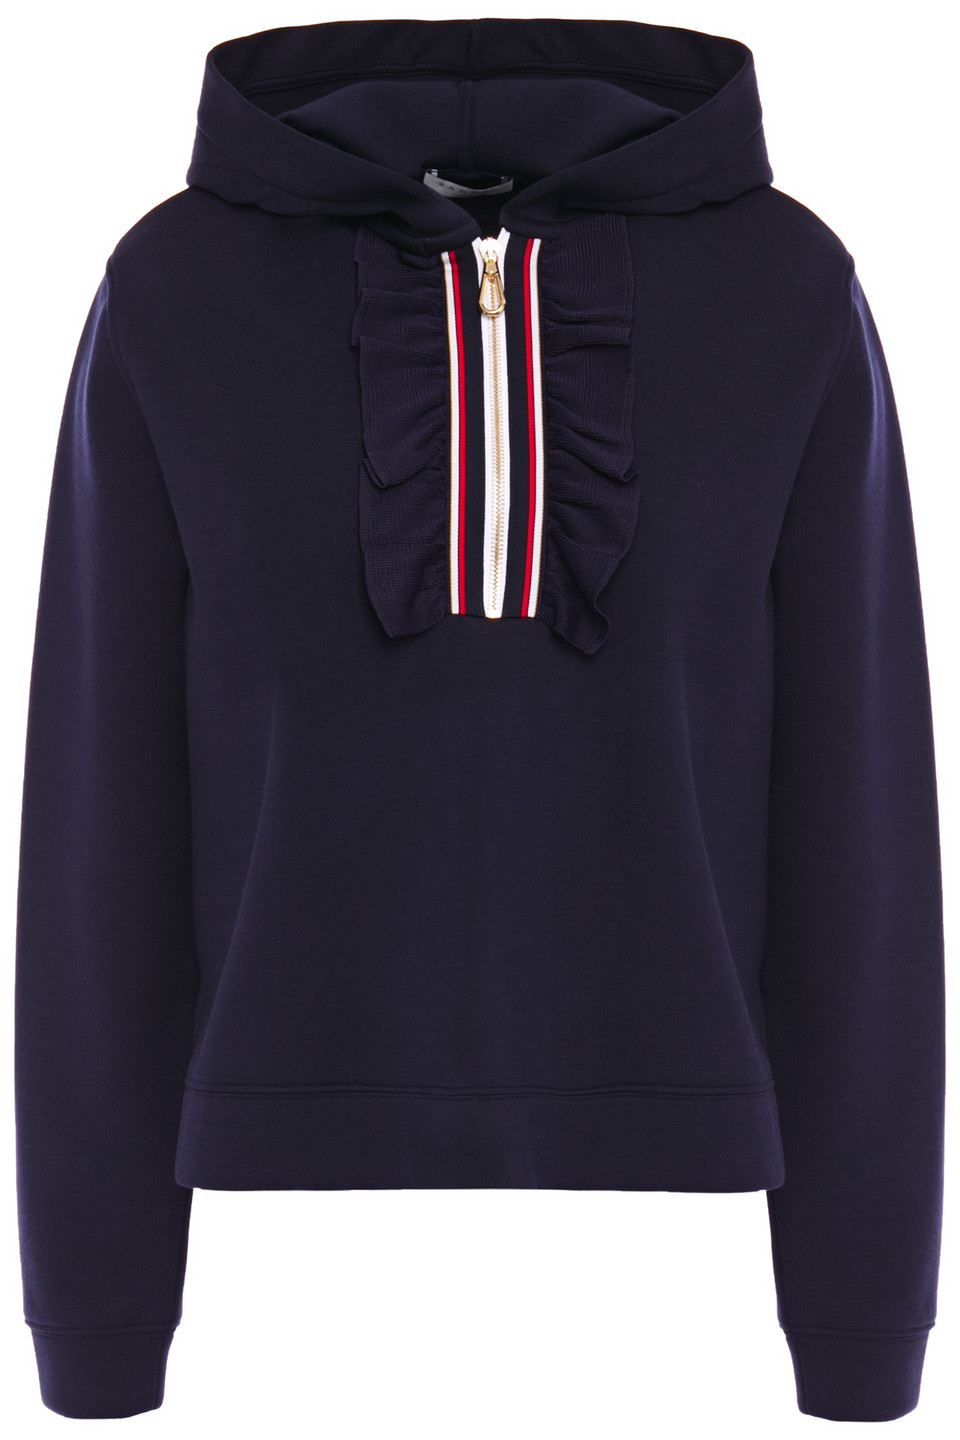 Sandro | Sandro Woman Ruffle And Grosgrain-trimmed Scuba Hoodie Navy | Clouty